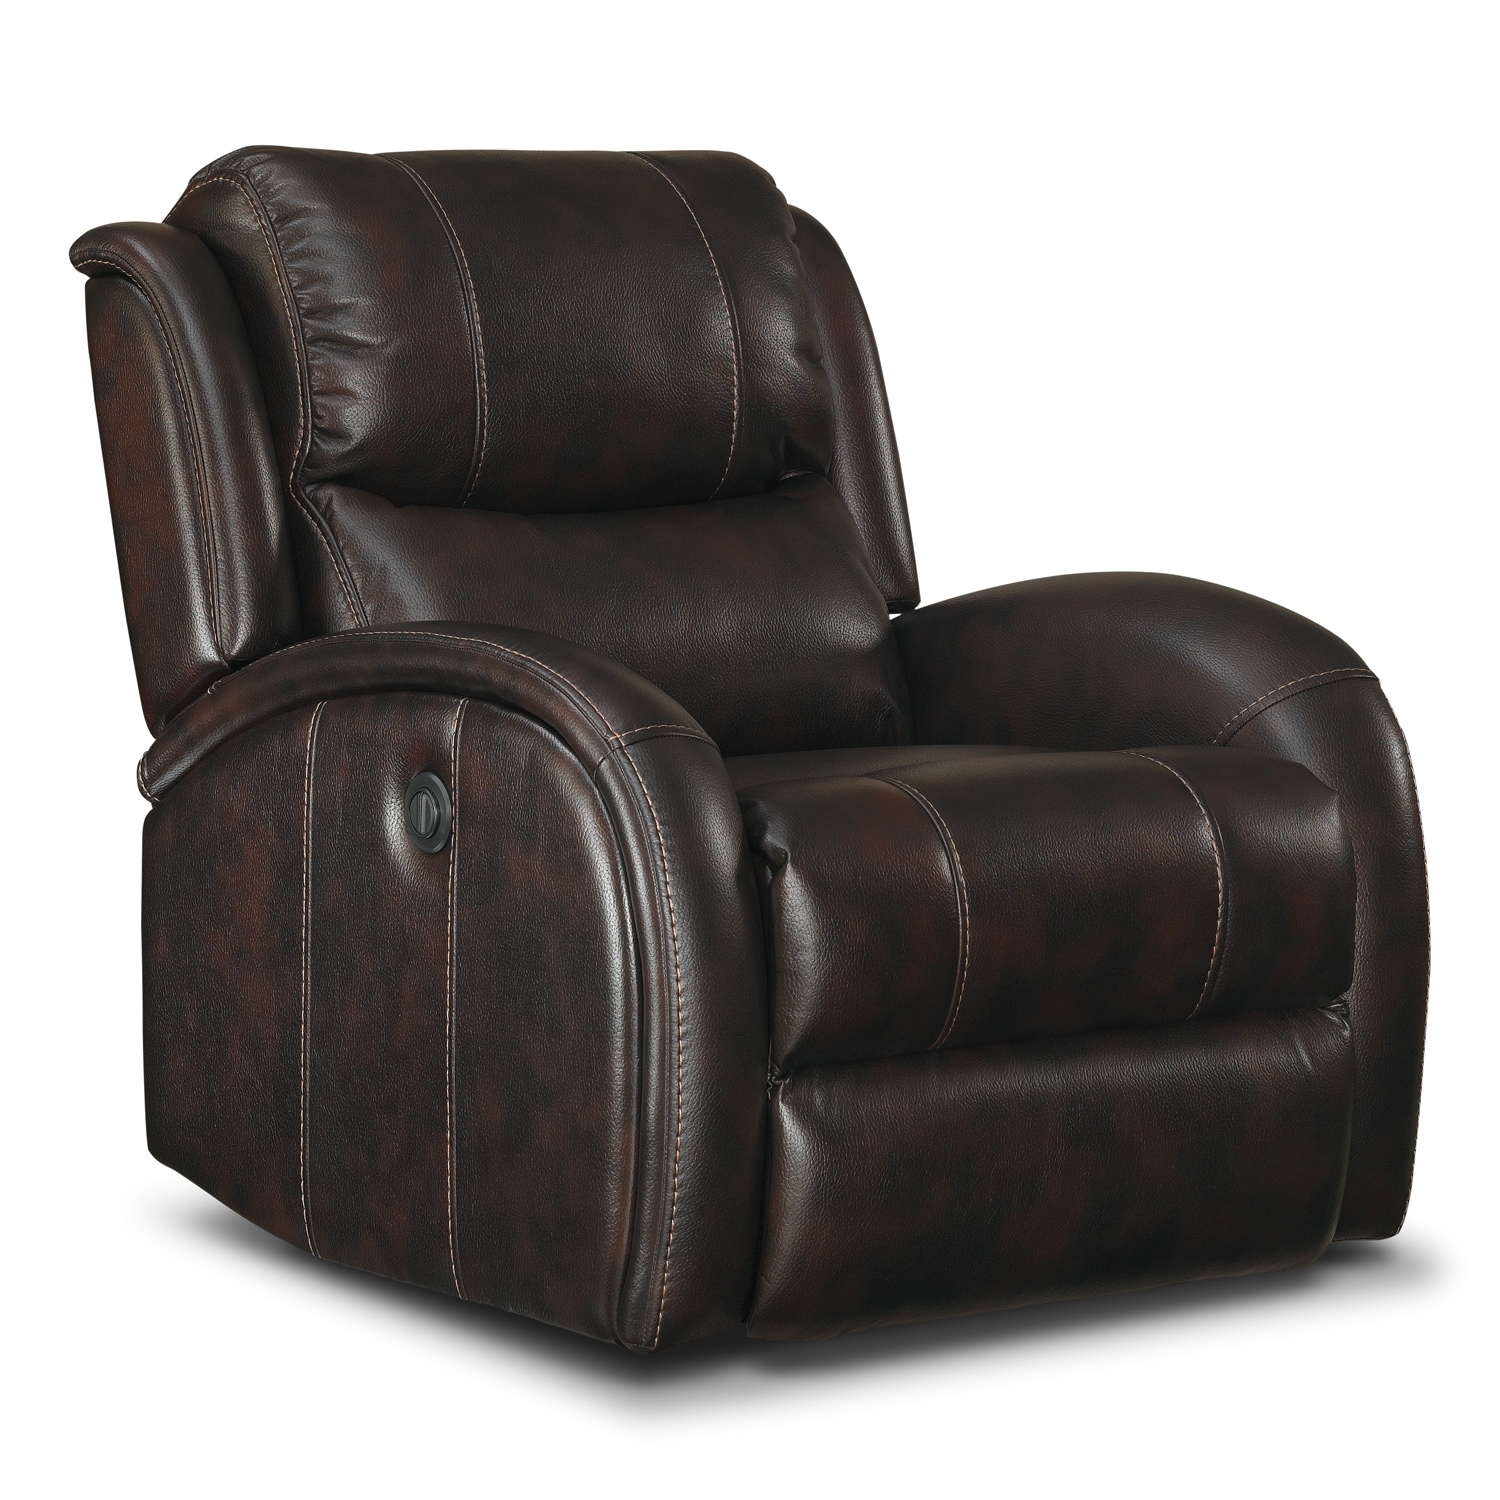 Furnishings for every room online and store furniture for Leather recliners